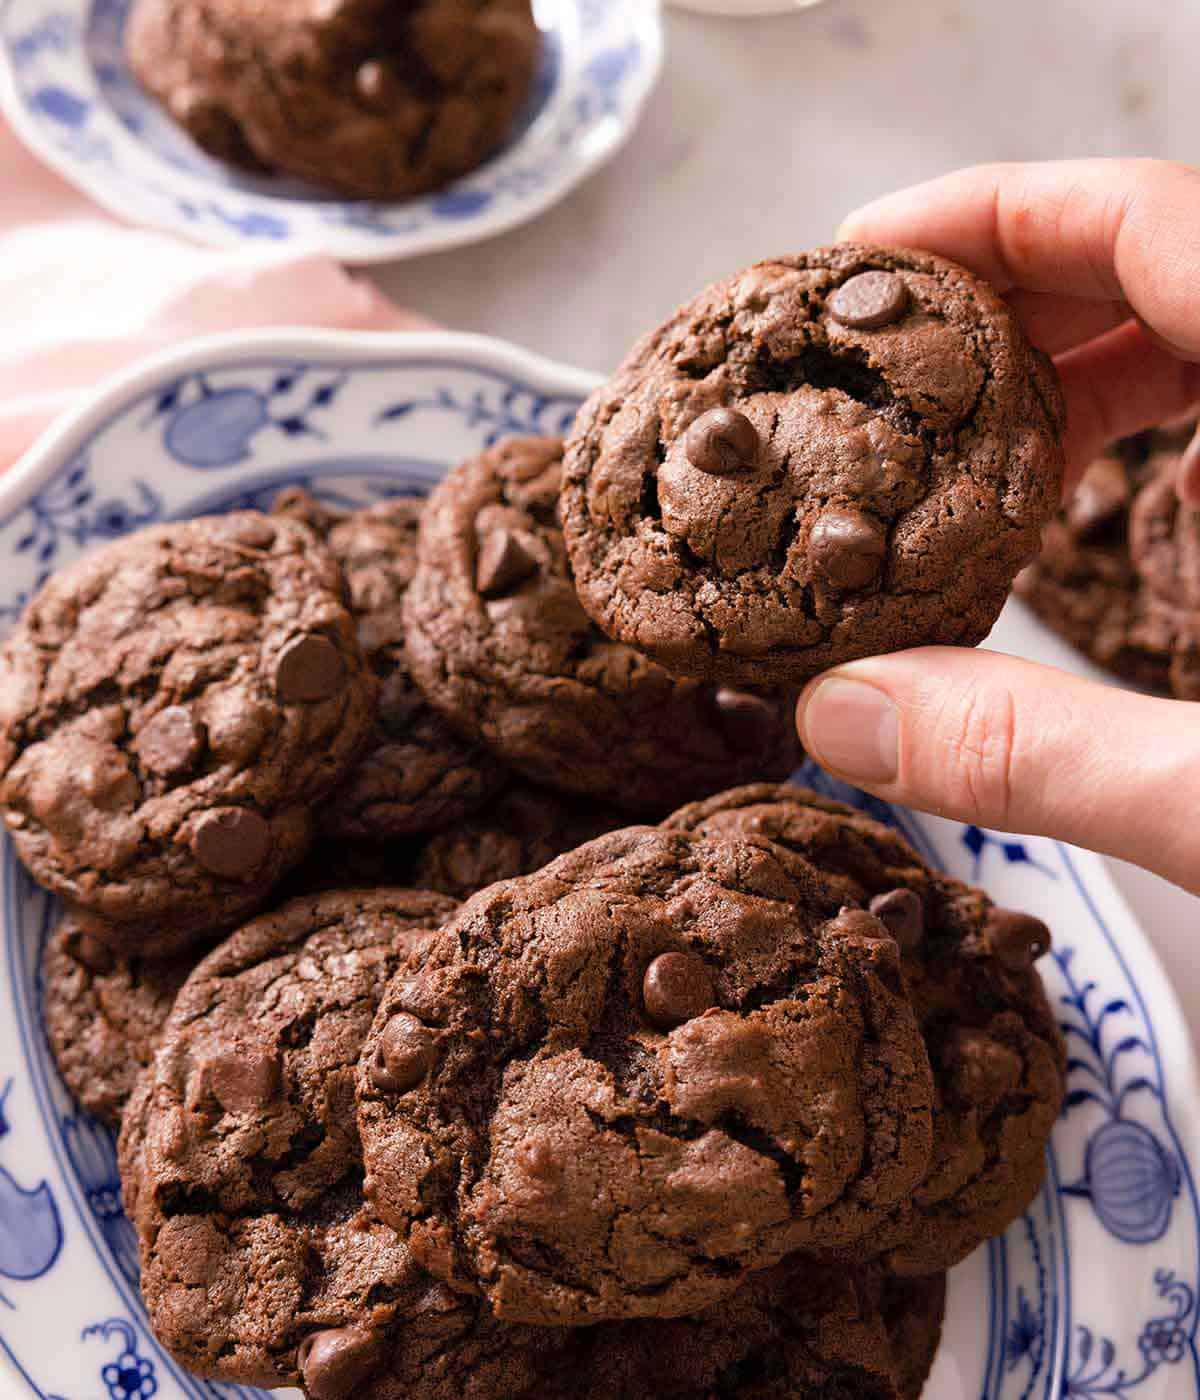 A hand lifting up a double chocolate chip from a platter of cookies.